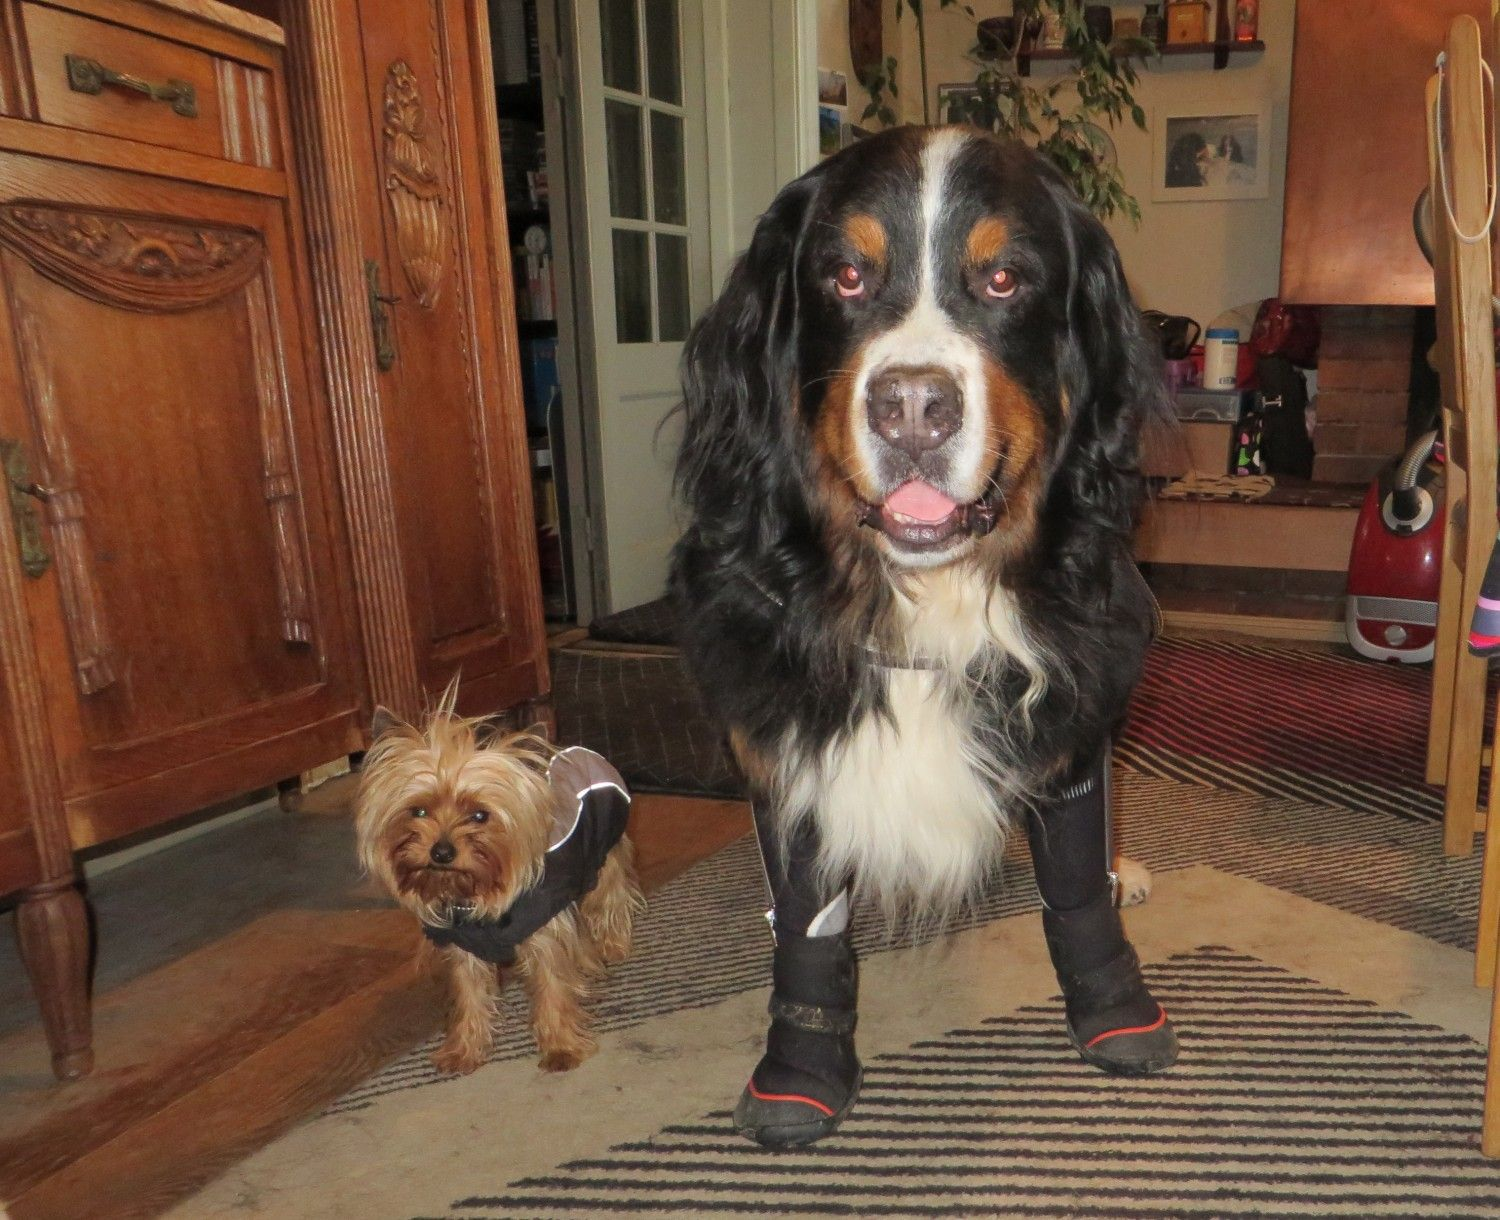 Moxiea happy saint moxie is a 10 year old st bernard who mom says eyko is so happy when hes wearing his shoes giant is his yorkie nvjuhfo Images